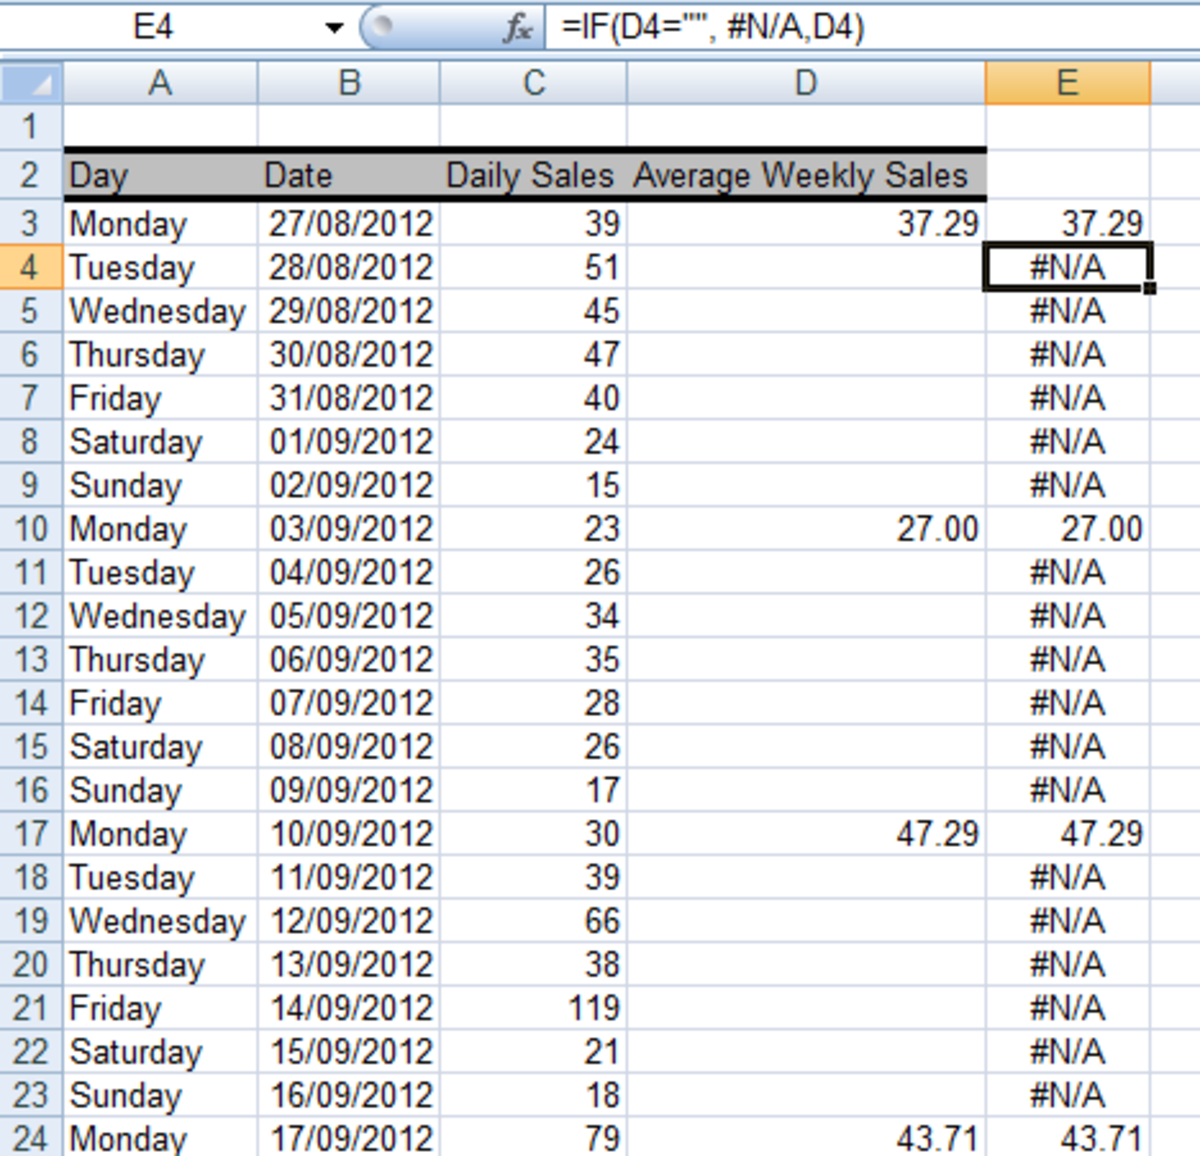 Ediblewildsus  Surprising How To Get Excel  And  To Ignore Empty Cells In A Chart Or  With Fascinating Using The If Function In A Formula To Convert Empty Cells To Na With Beautiful Convert Excel To Google Spreadsheet Also Count Non Empty Cells Excel In Addition Excel String Formulas And Microsoft Excel Split Cells As Well As Google Docs Excel Sheet Additionally Excel Nested If And From Turbofuturecom With Ediblewildsus  Fascinating How To Get Excel  And  To Ignore Empty Cells In A Chart Or  With Beautiful Using The If Function In A Formula To Convert Empty Cells To Na And Surprising Convert Excel To Google Spreadsheet Also Count Non Empty Cells Excel In Addition Excel String Formulas From Turbofuturecom